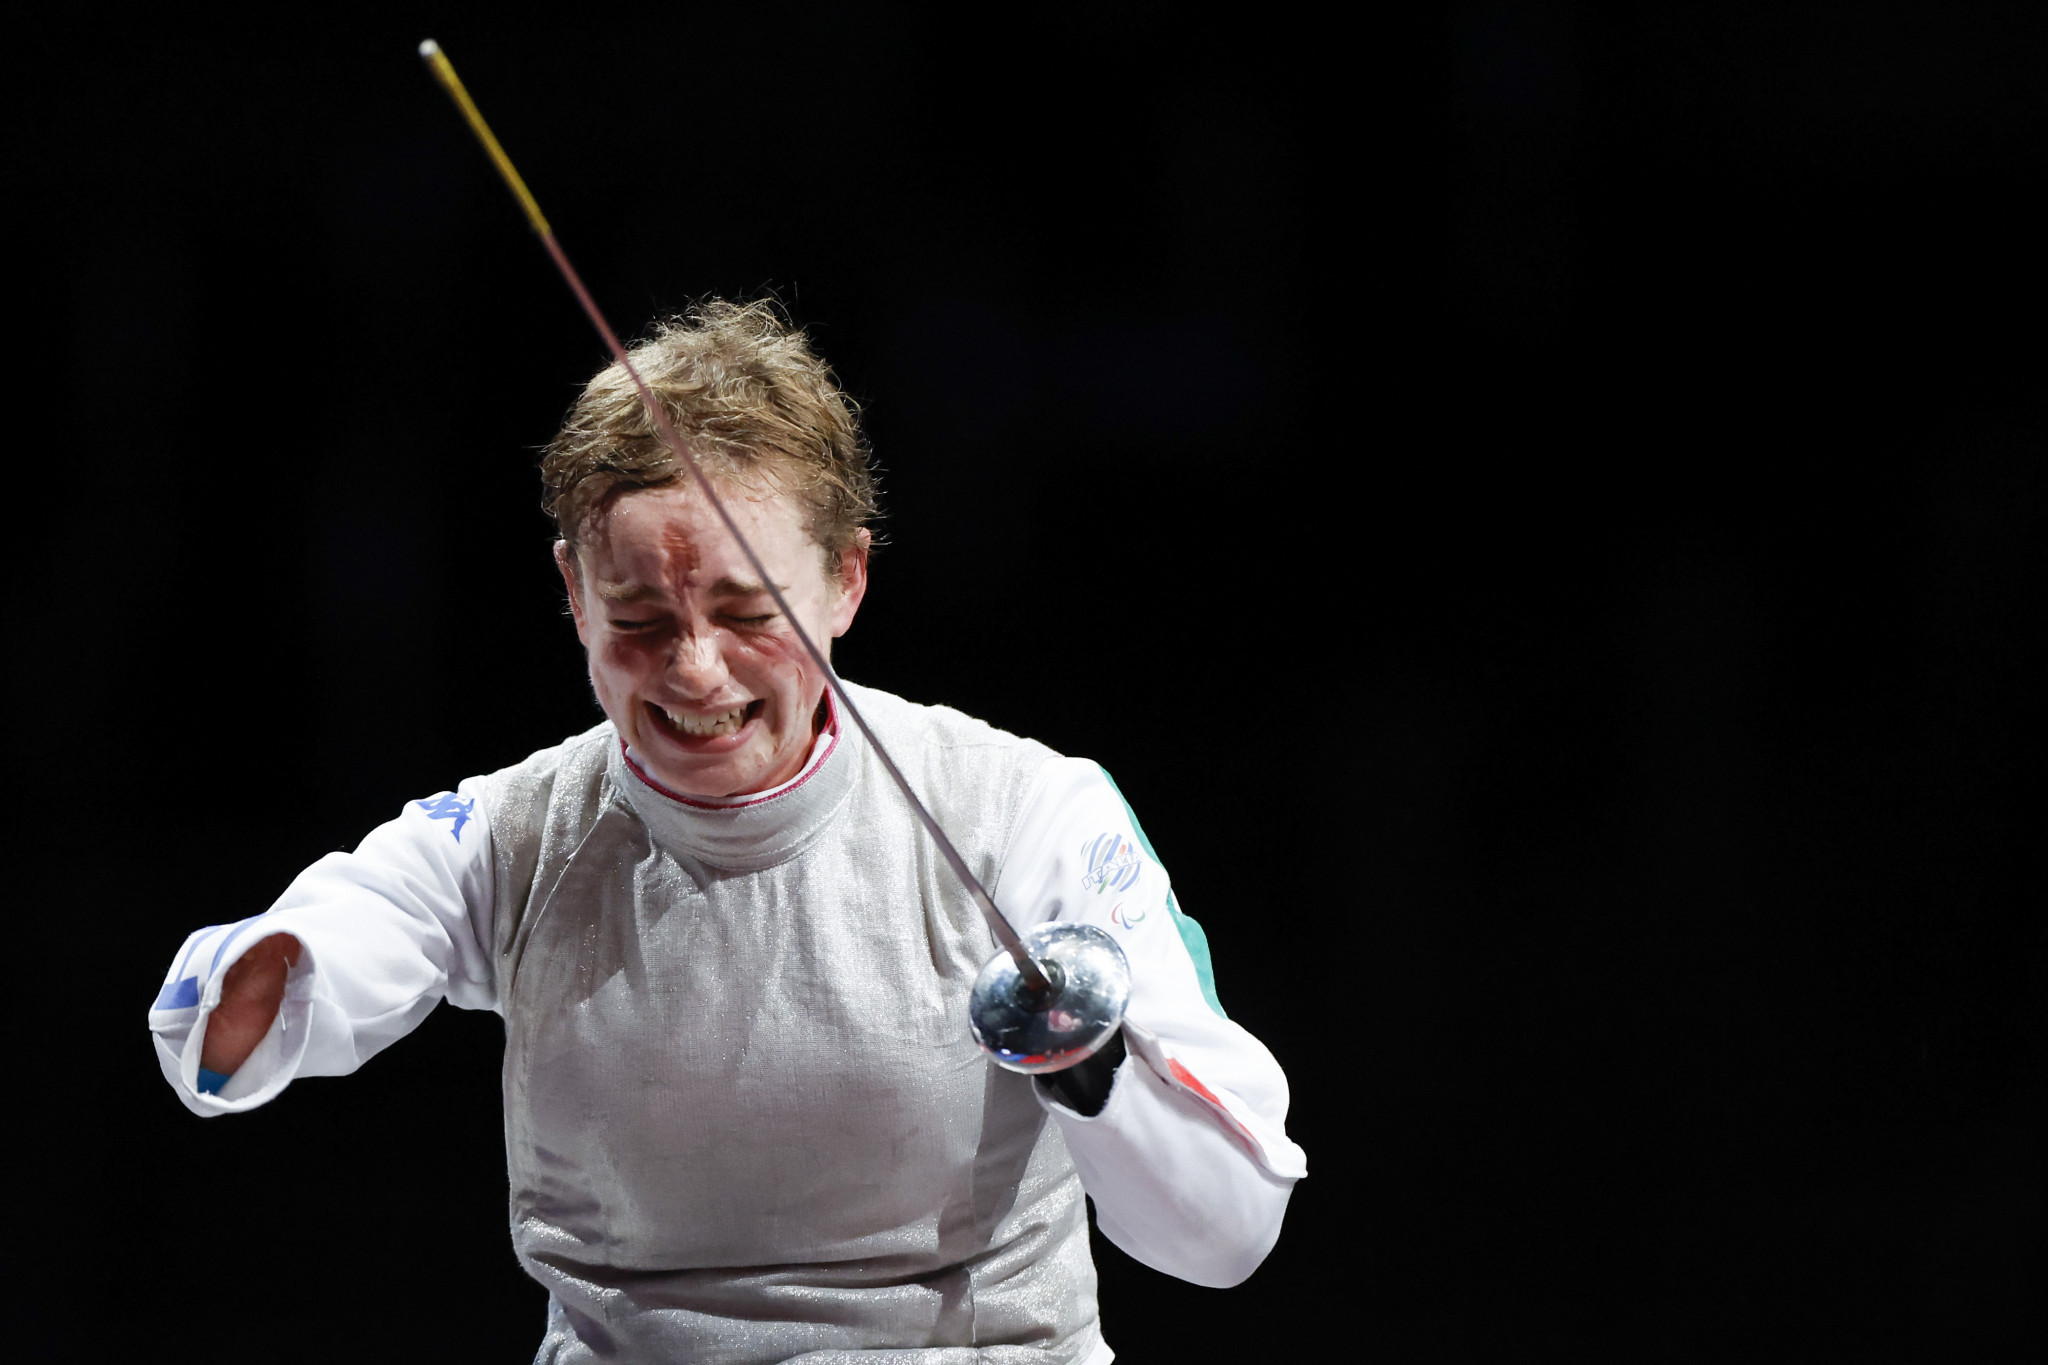 Vio victorious at Tokyo 2020 as Italian retains wheelchair fencing foil title